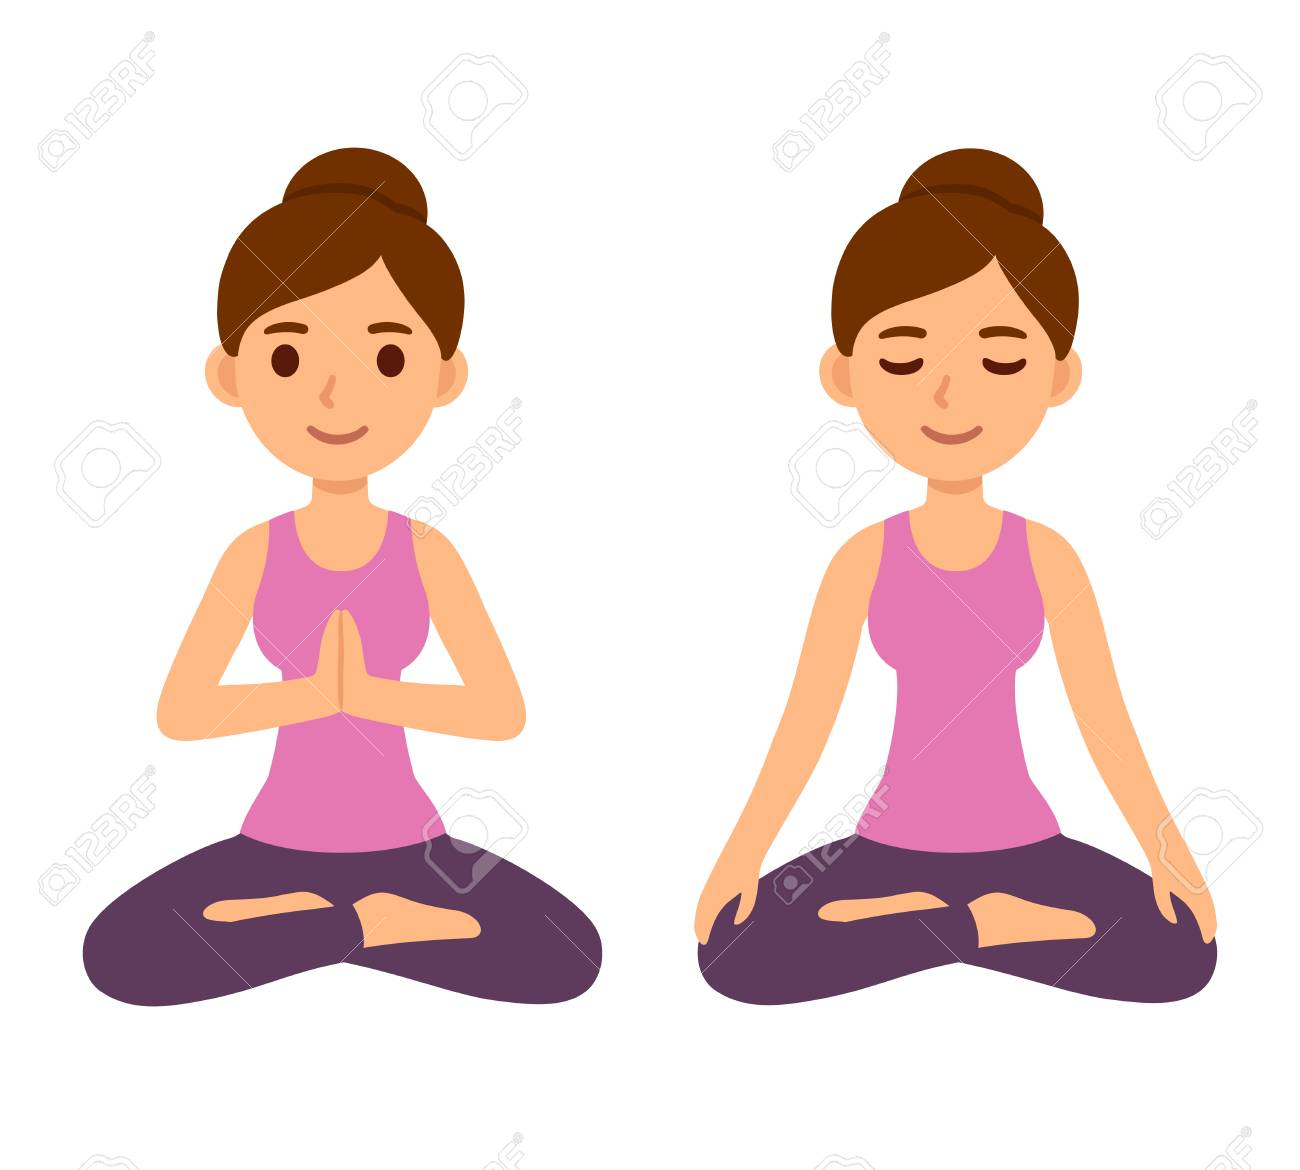 Cute Cartoon Young Woman Doing Yoga And Meditating In Lotus Pose Royalty Free Cliparts Vectors And Stock Illustration Image 128176241